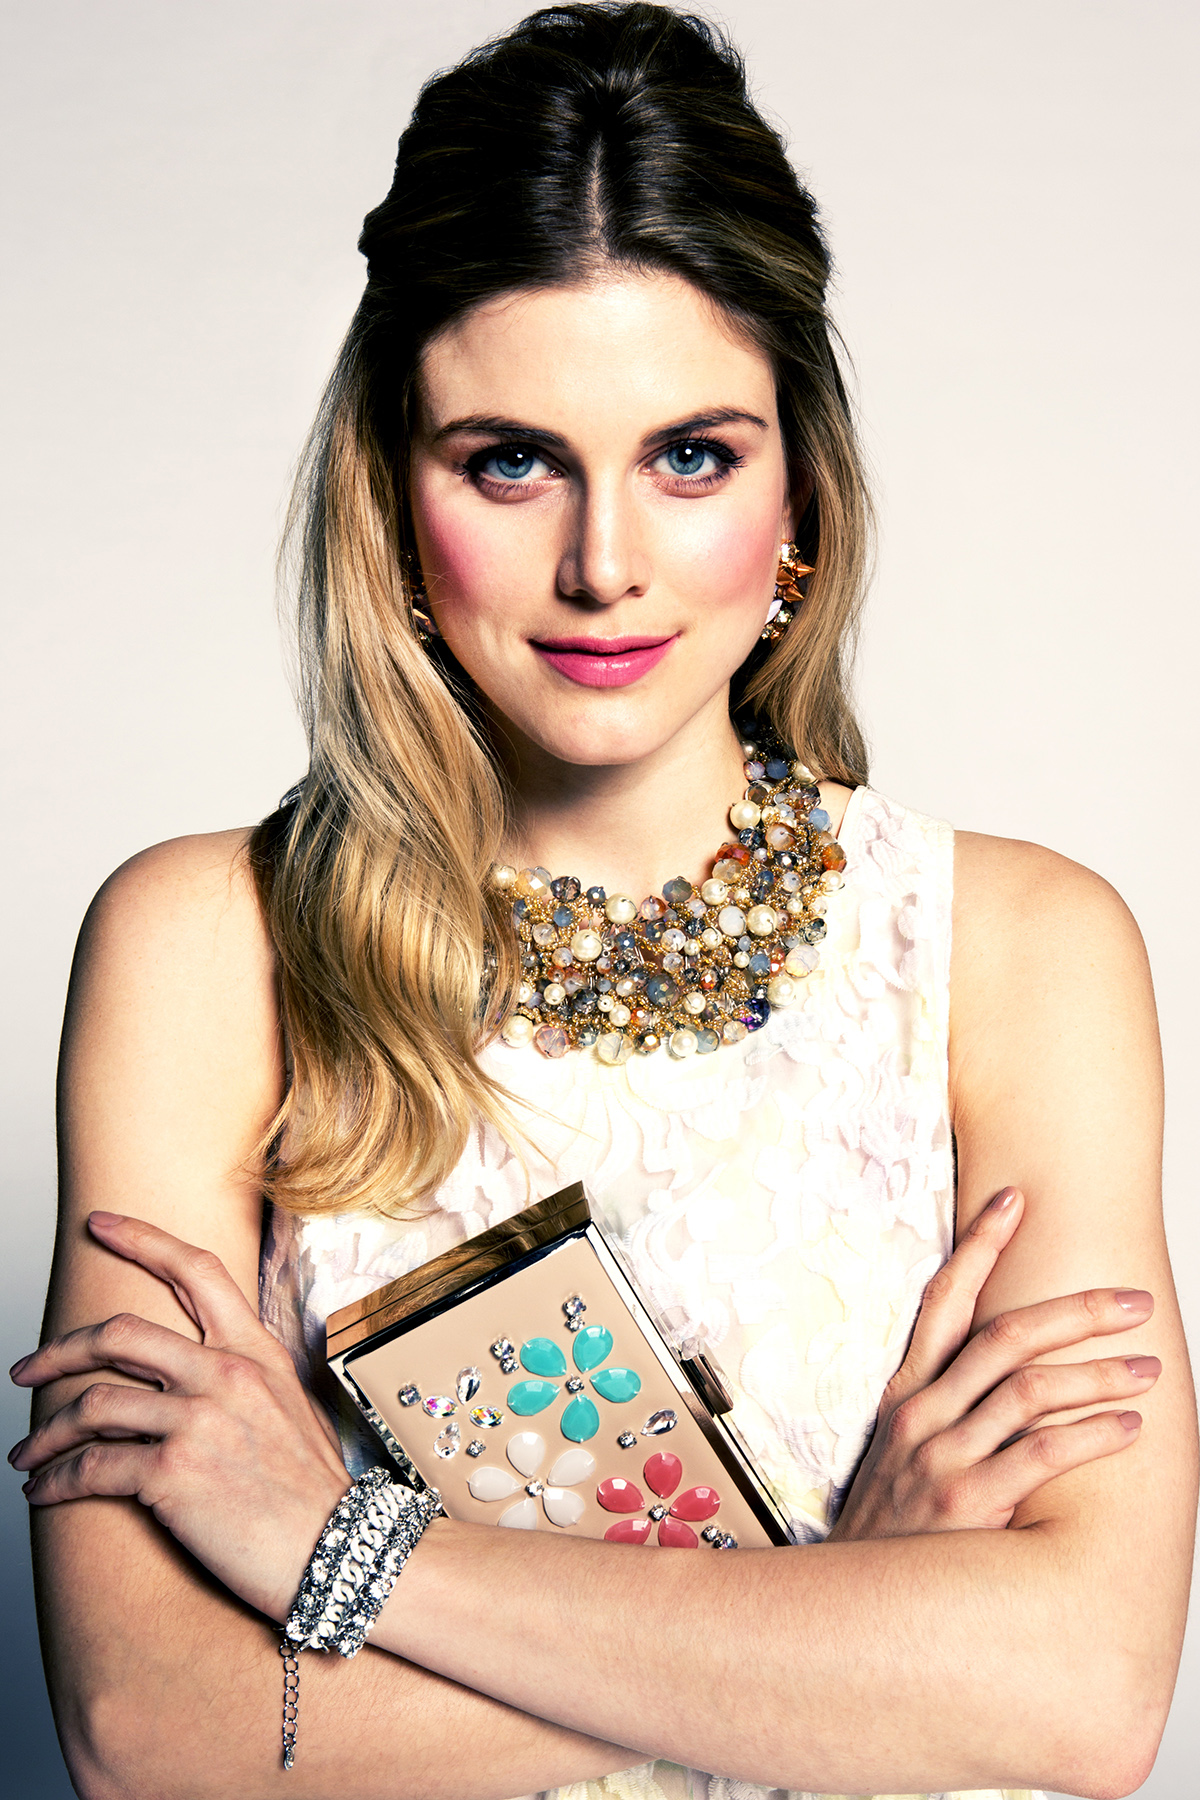 The Spring Summer accessories camaign at McArthurGlen Designer Outlets UK -2nd 20th April, featuring Ashley James (4)